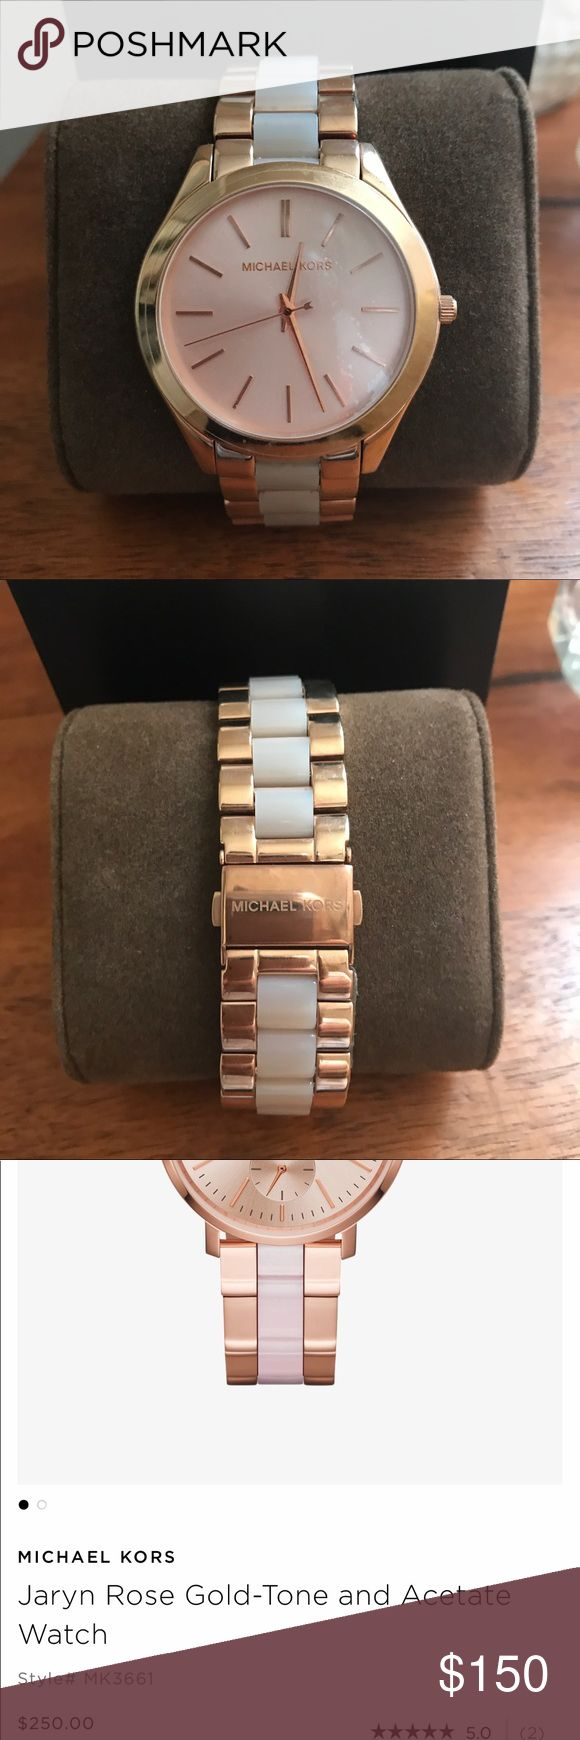 Brand New Michael Kors Watch Beautiful, never worn rose gold watch with packaging. KORS Michael Kors Accessories Watches